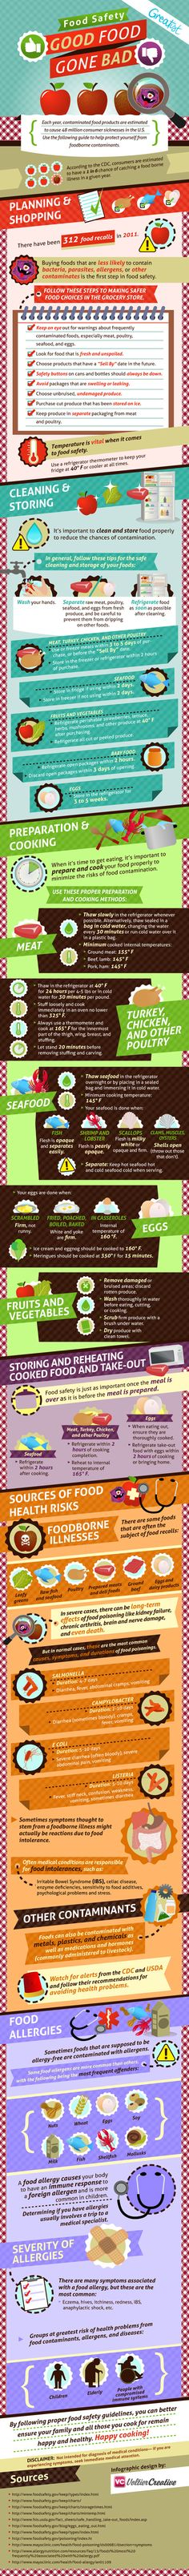 A quick infographic from FriendsEat about keeping your food safe.